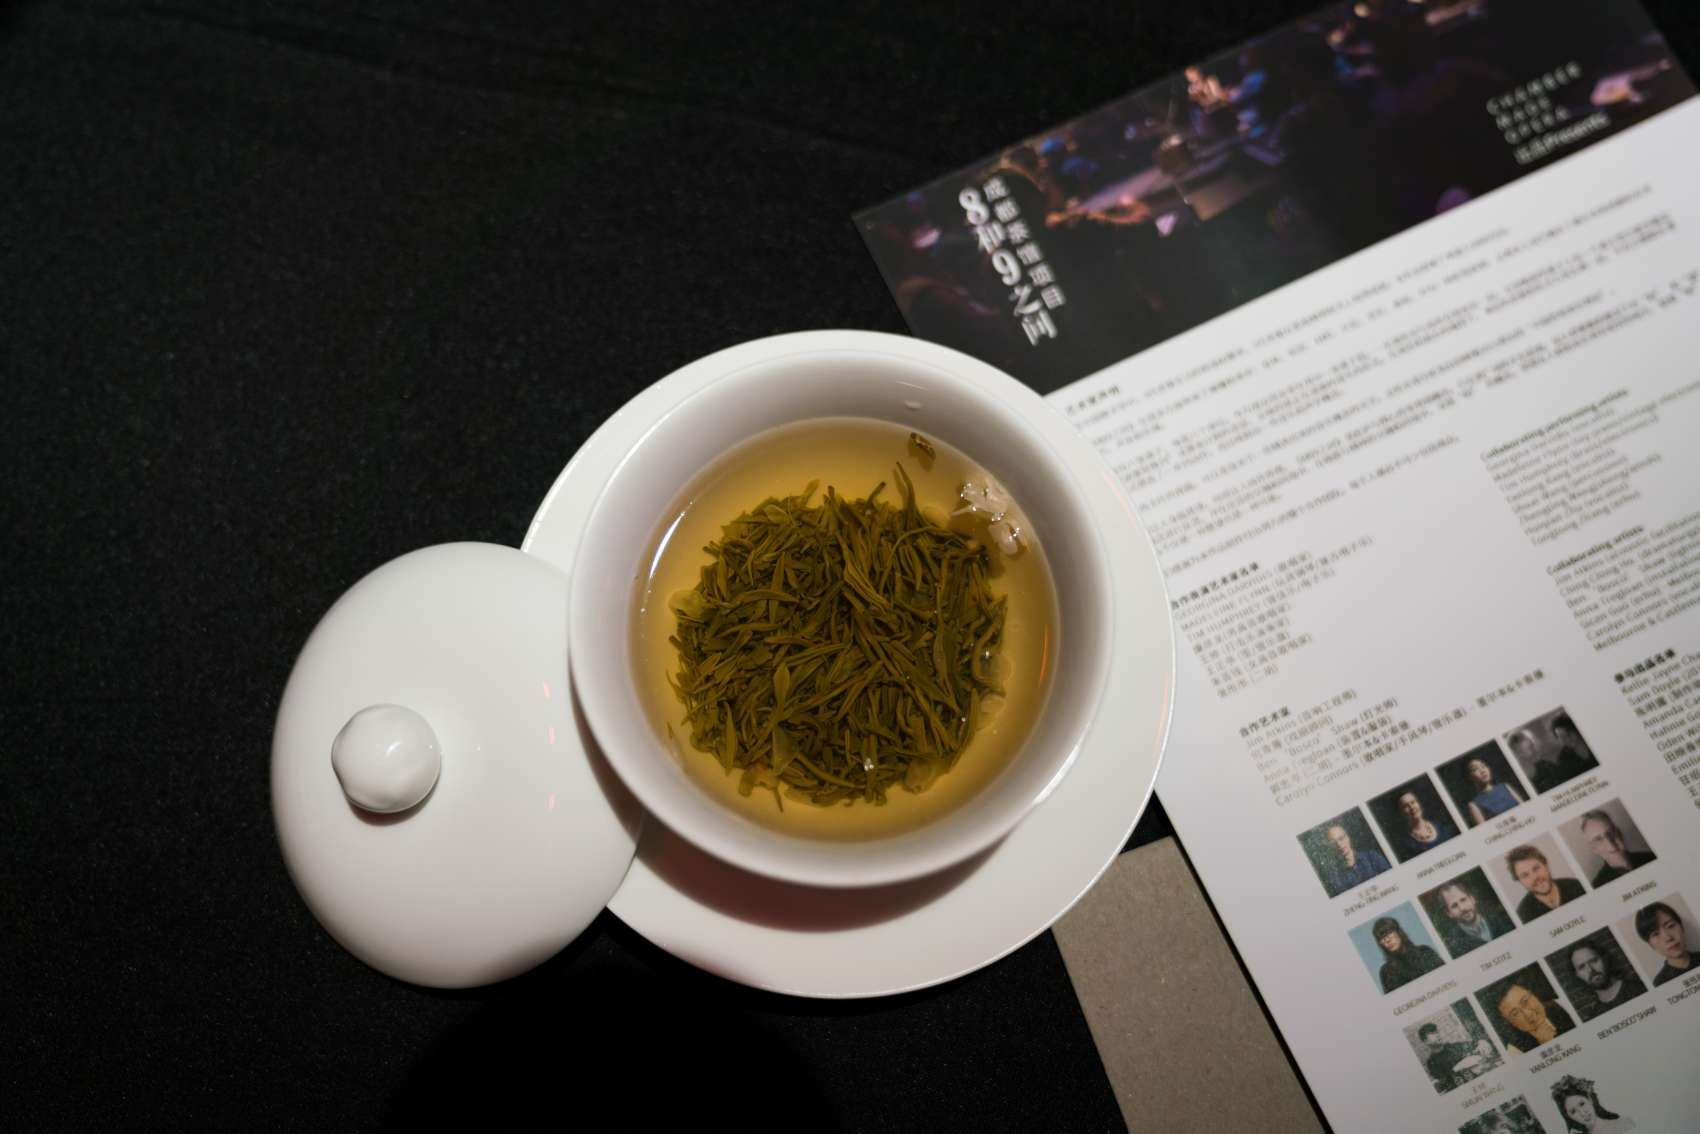 A Chinese tea cup and a program for 'Between 8 & 9'